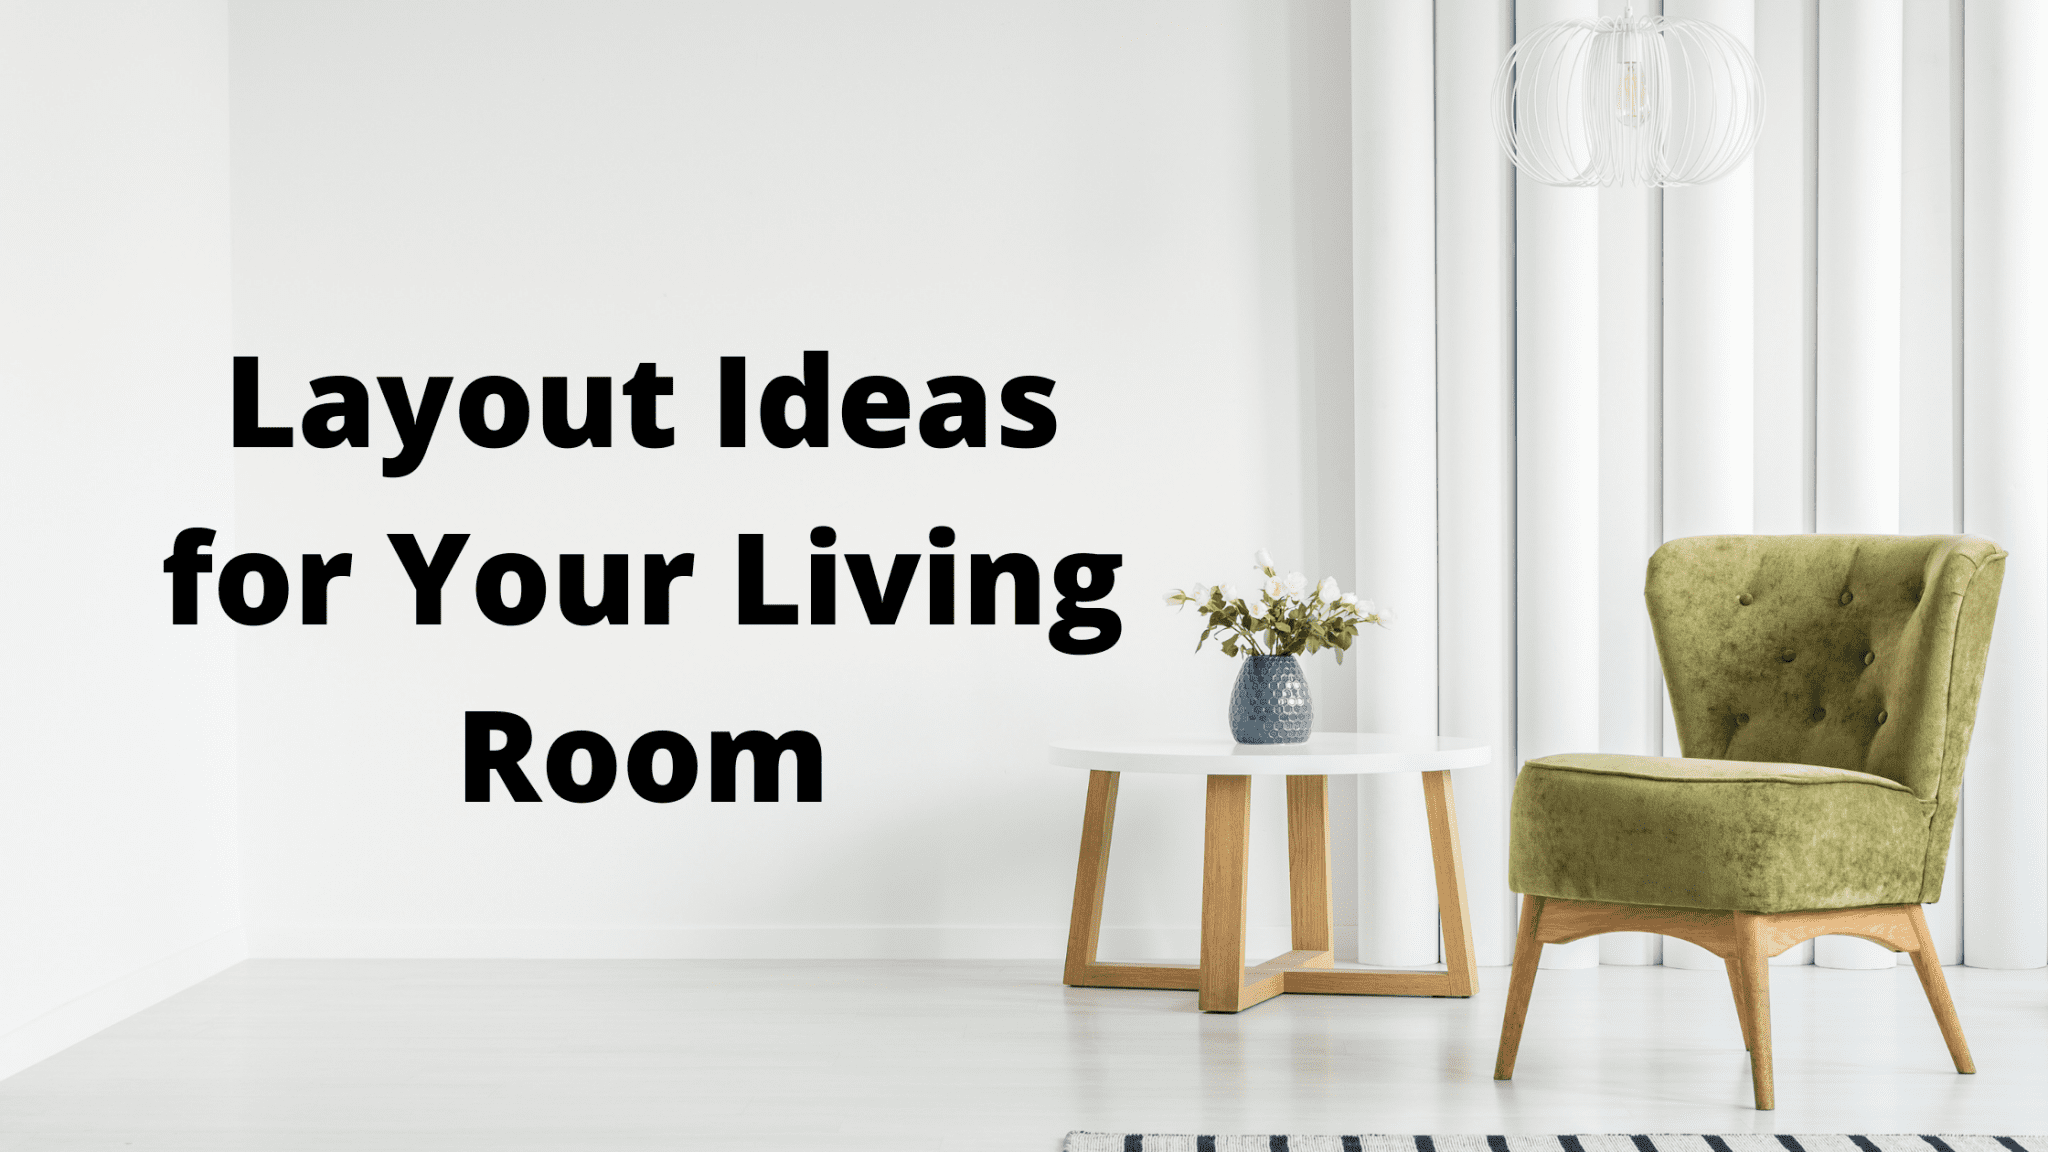 Layout Ideas for Your Living Room